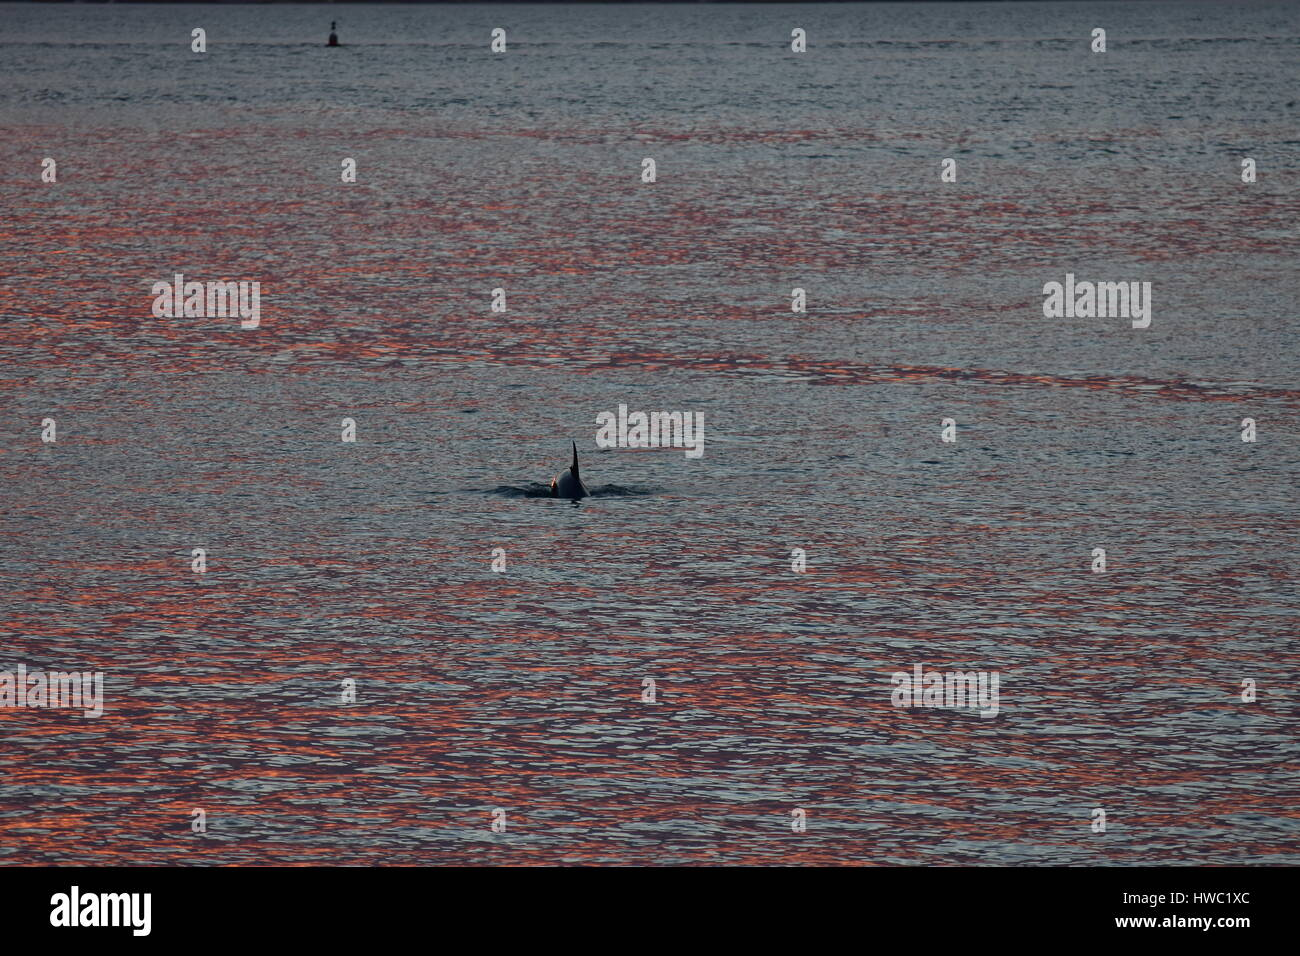 Dolphin showing dorsal fin on calm surface covered with red reflections of late evening sun light. Stock Photo